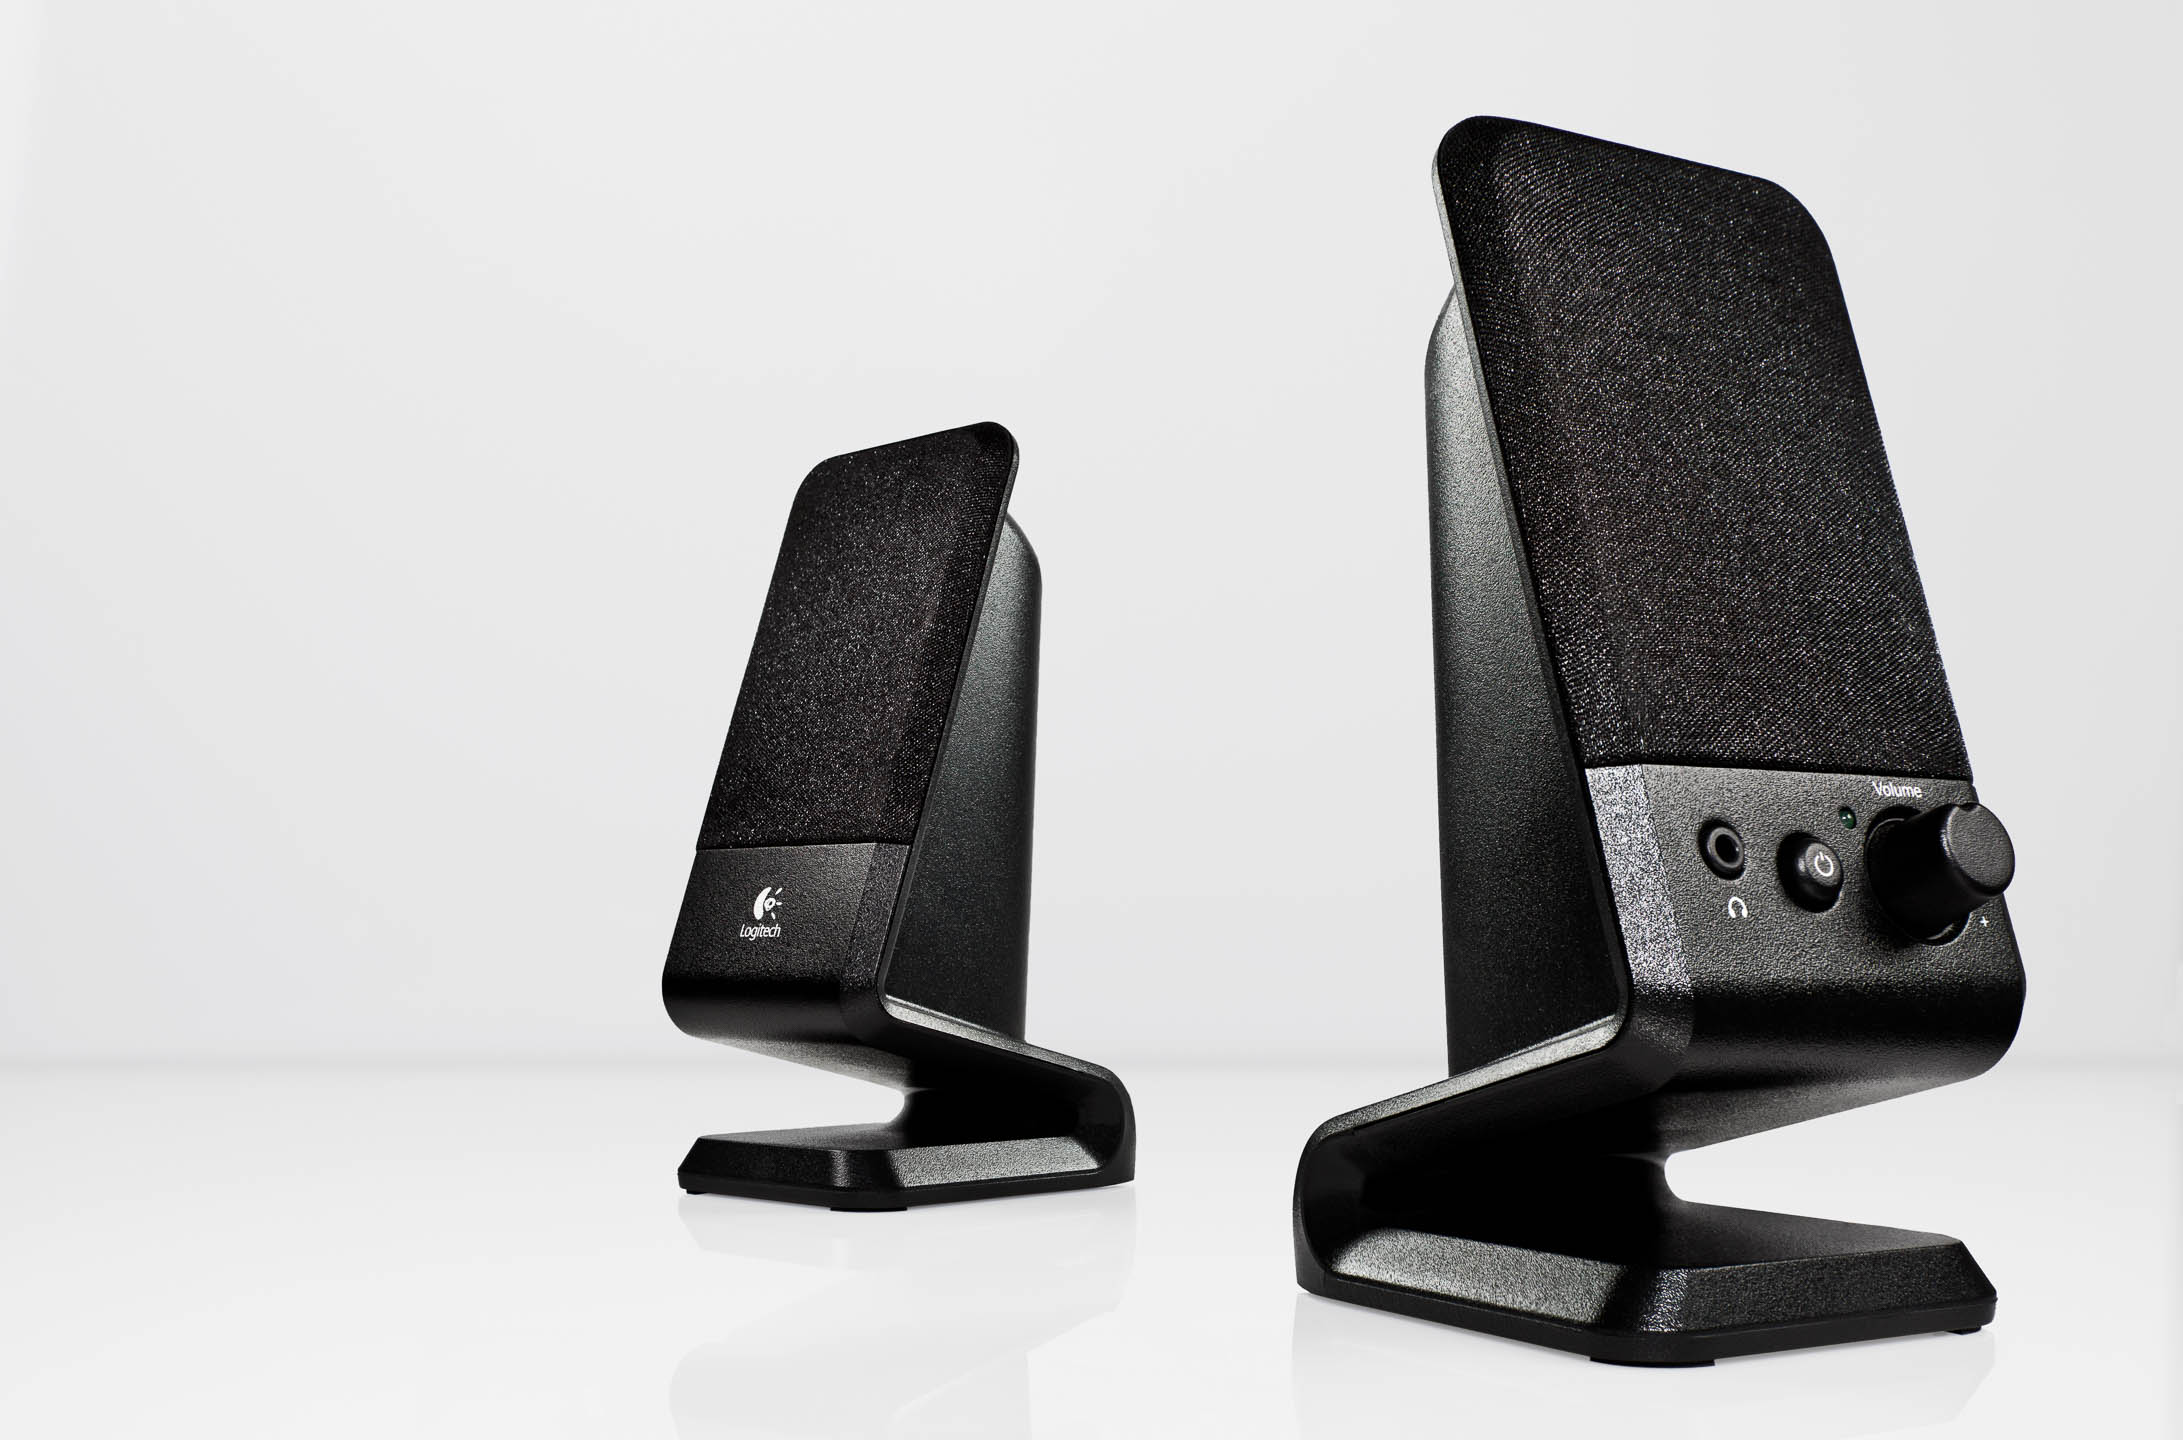 Logitech computer speakers by Steve Temple Photography